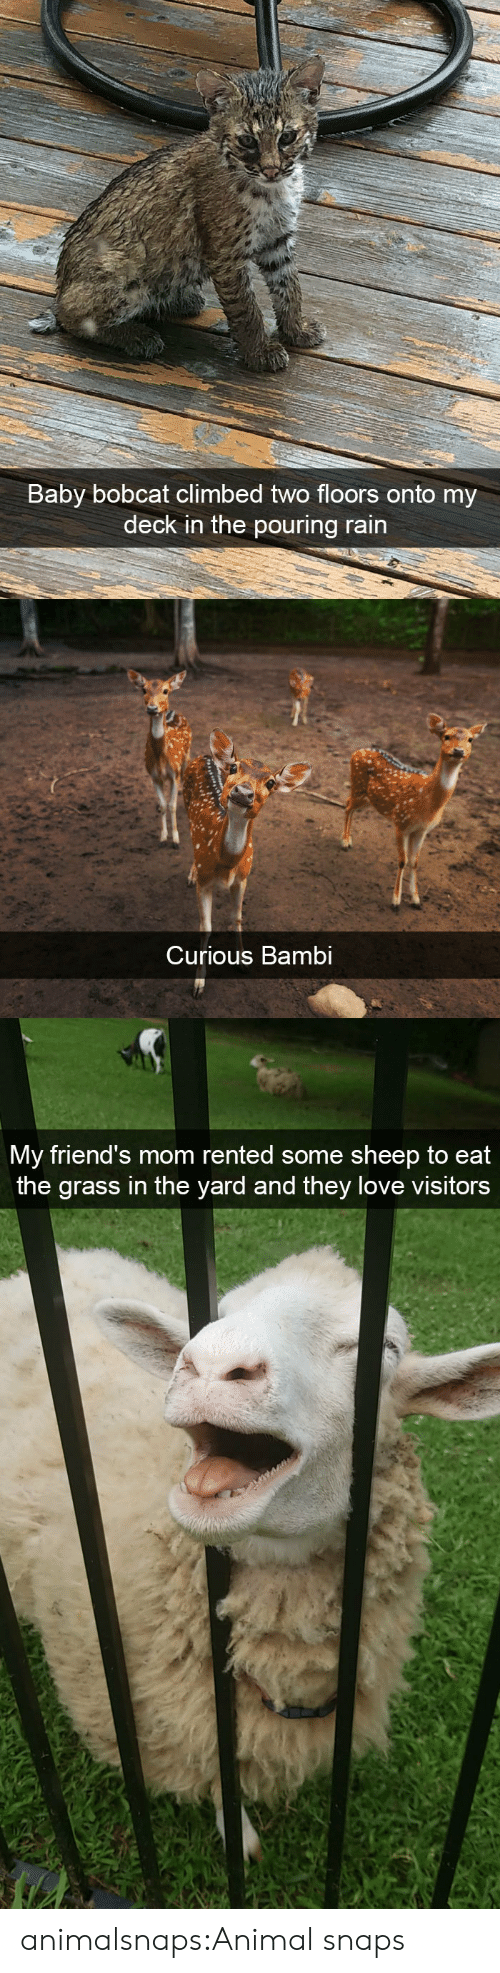 Bambi: Baby bobcat climbed two floors  deck in the pouring rain  onto my   Curious Bambi   My friend's mom rented some sheep to eat  the grass in the yard and they love visitors animalsnaps:Animal snaps